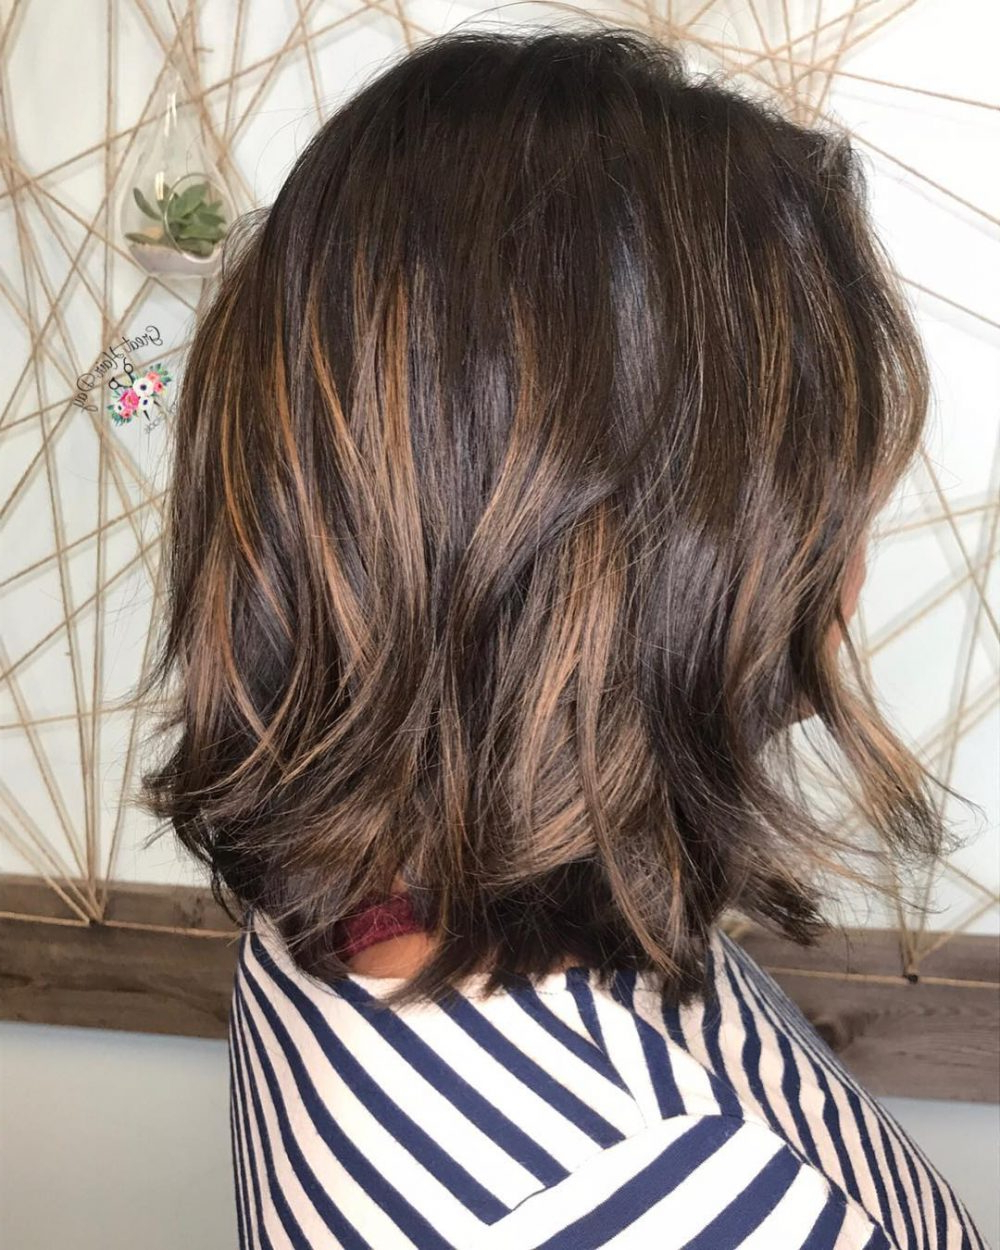 34 Sweetest Caramel Highlights On Light To Dark Brown Hair (2018) Throughout Short Crop Hairstyles With Colorful Highlights (View 7 of 20)